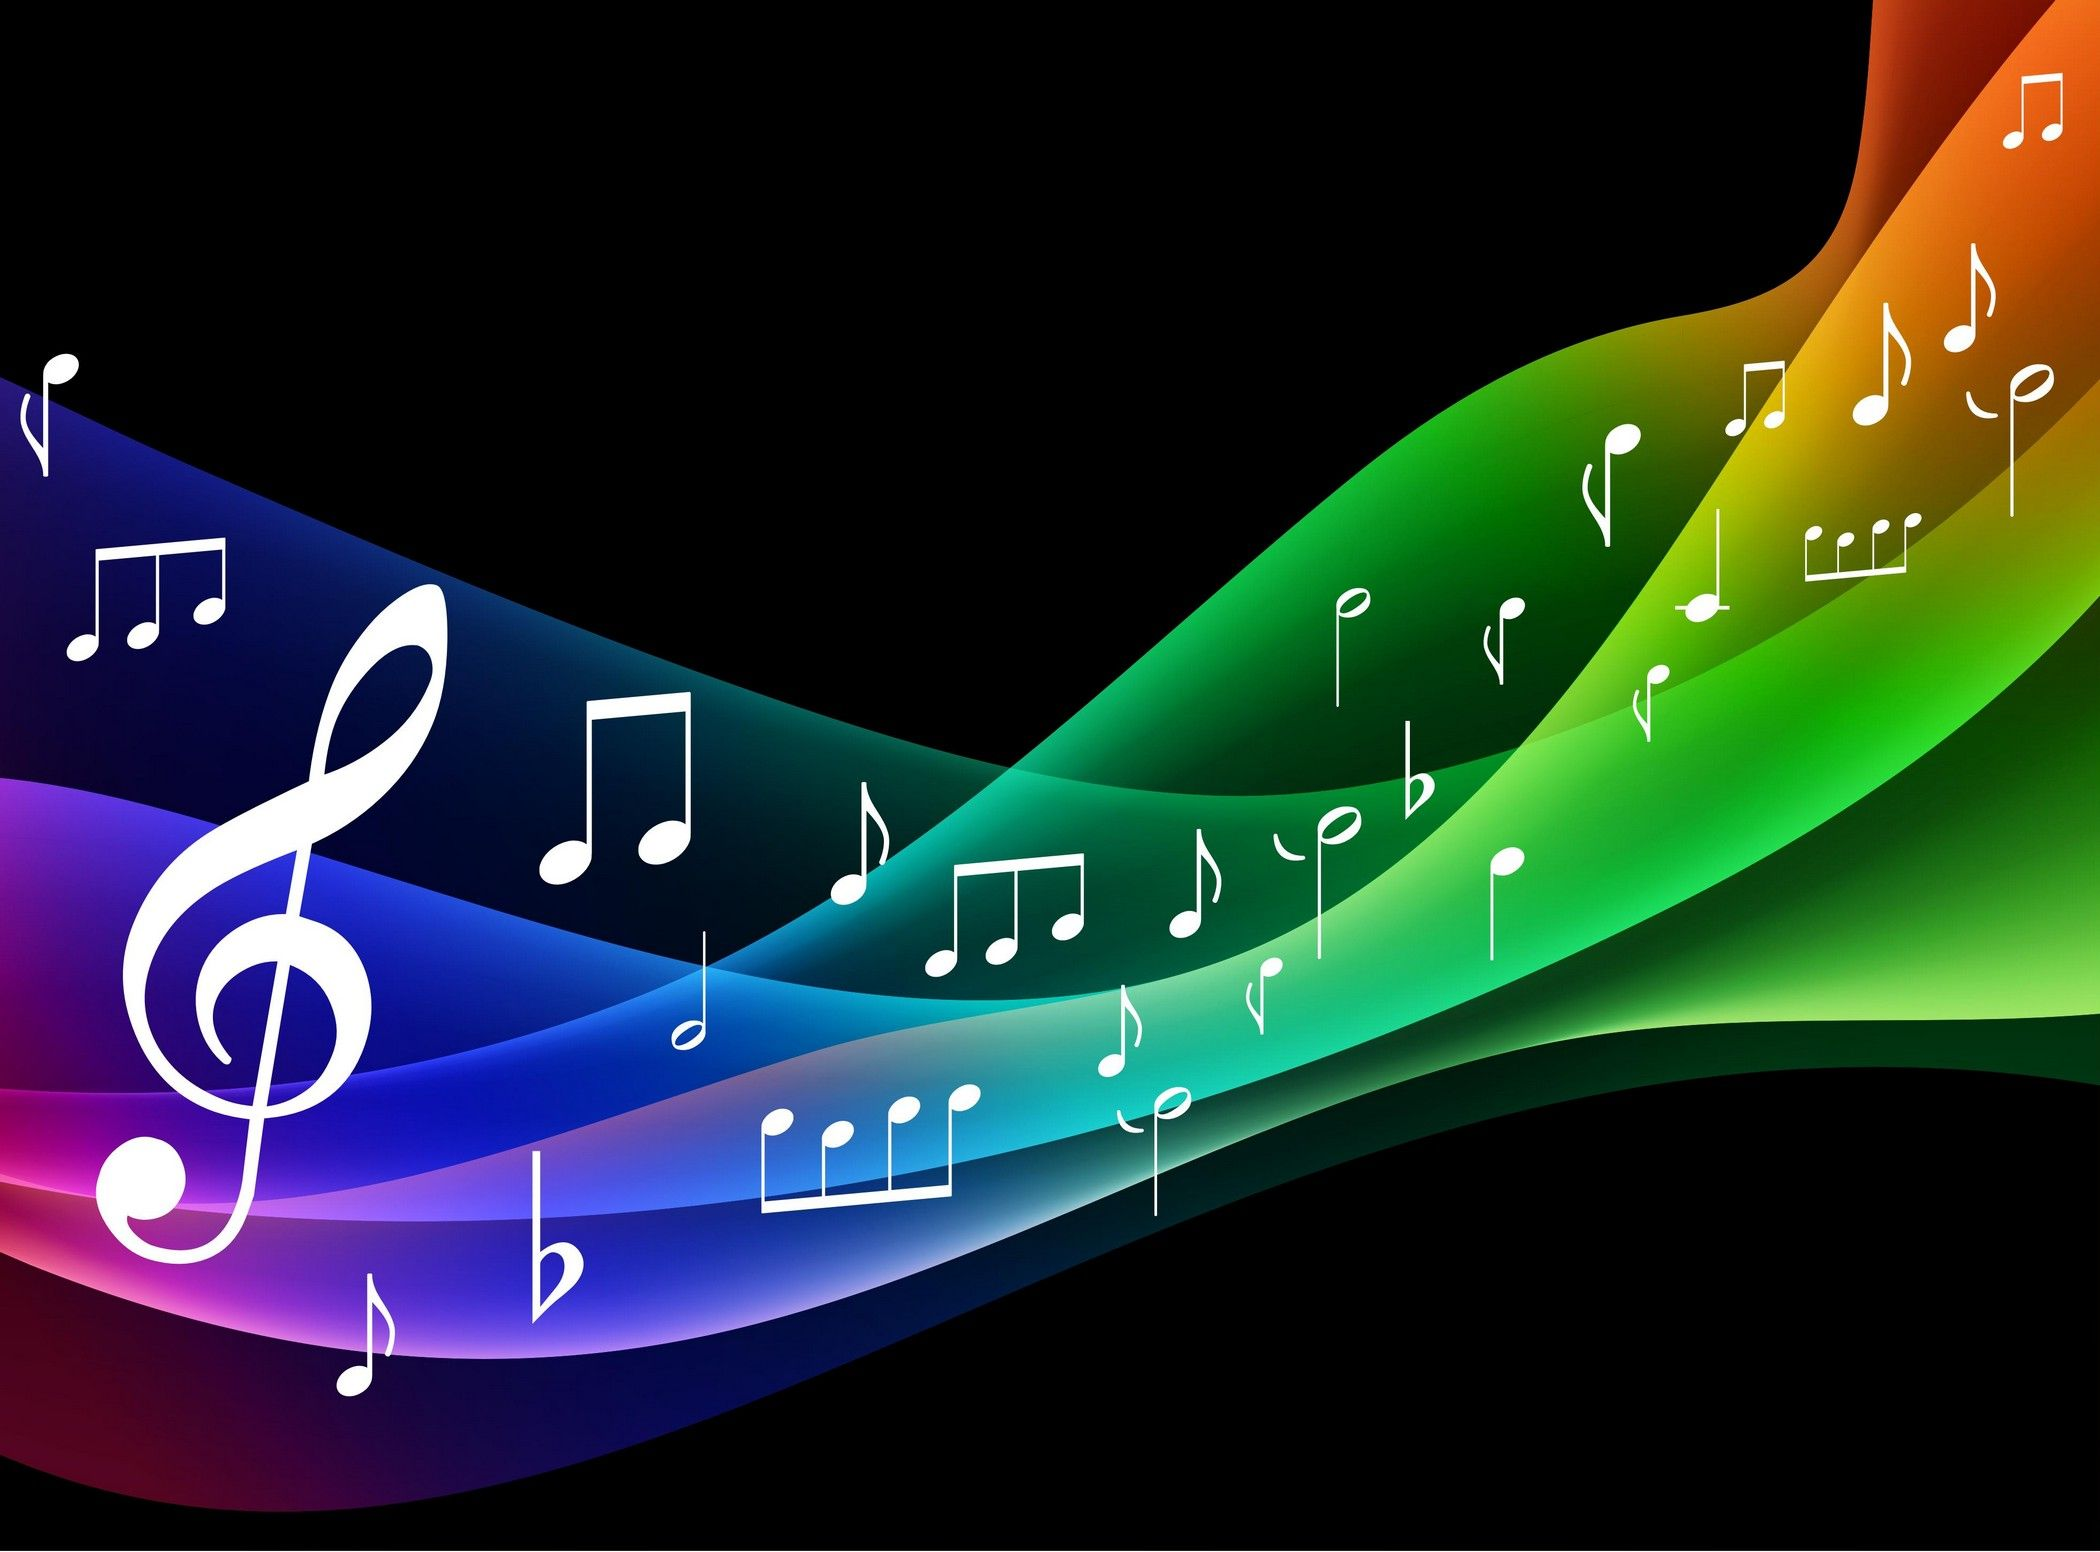 Music Backgrounds Symphony Music Background Vector [EPS